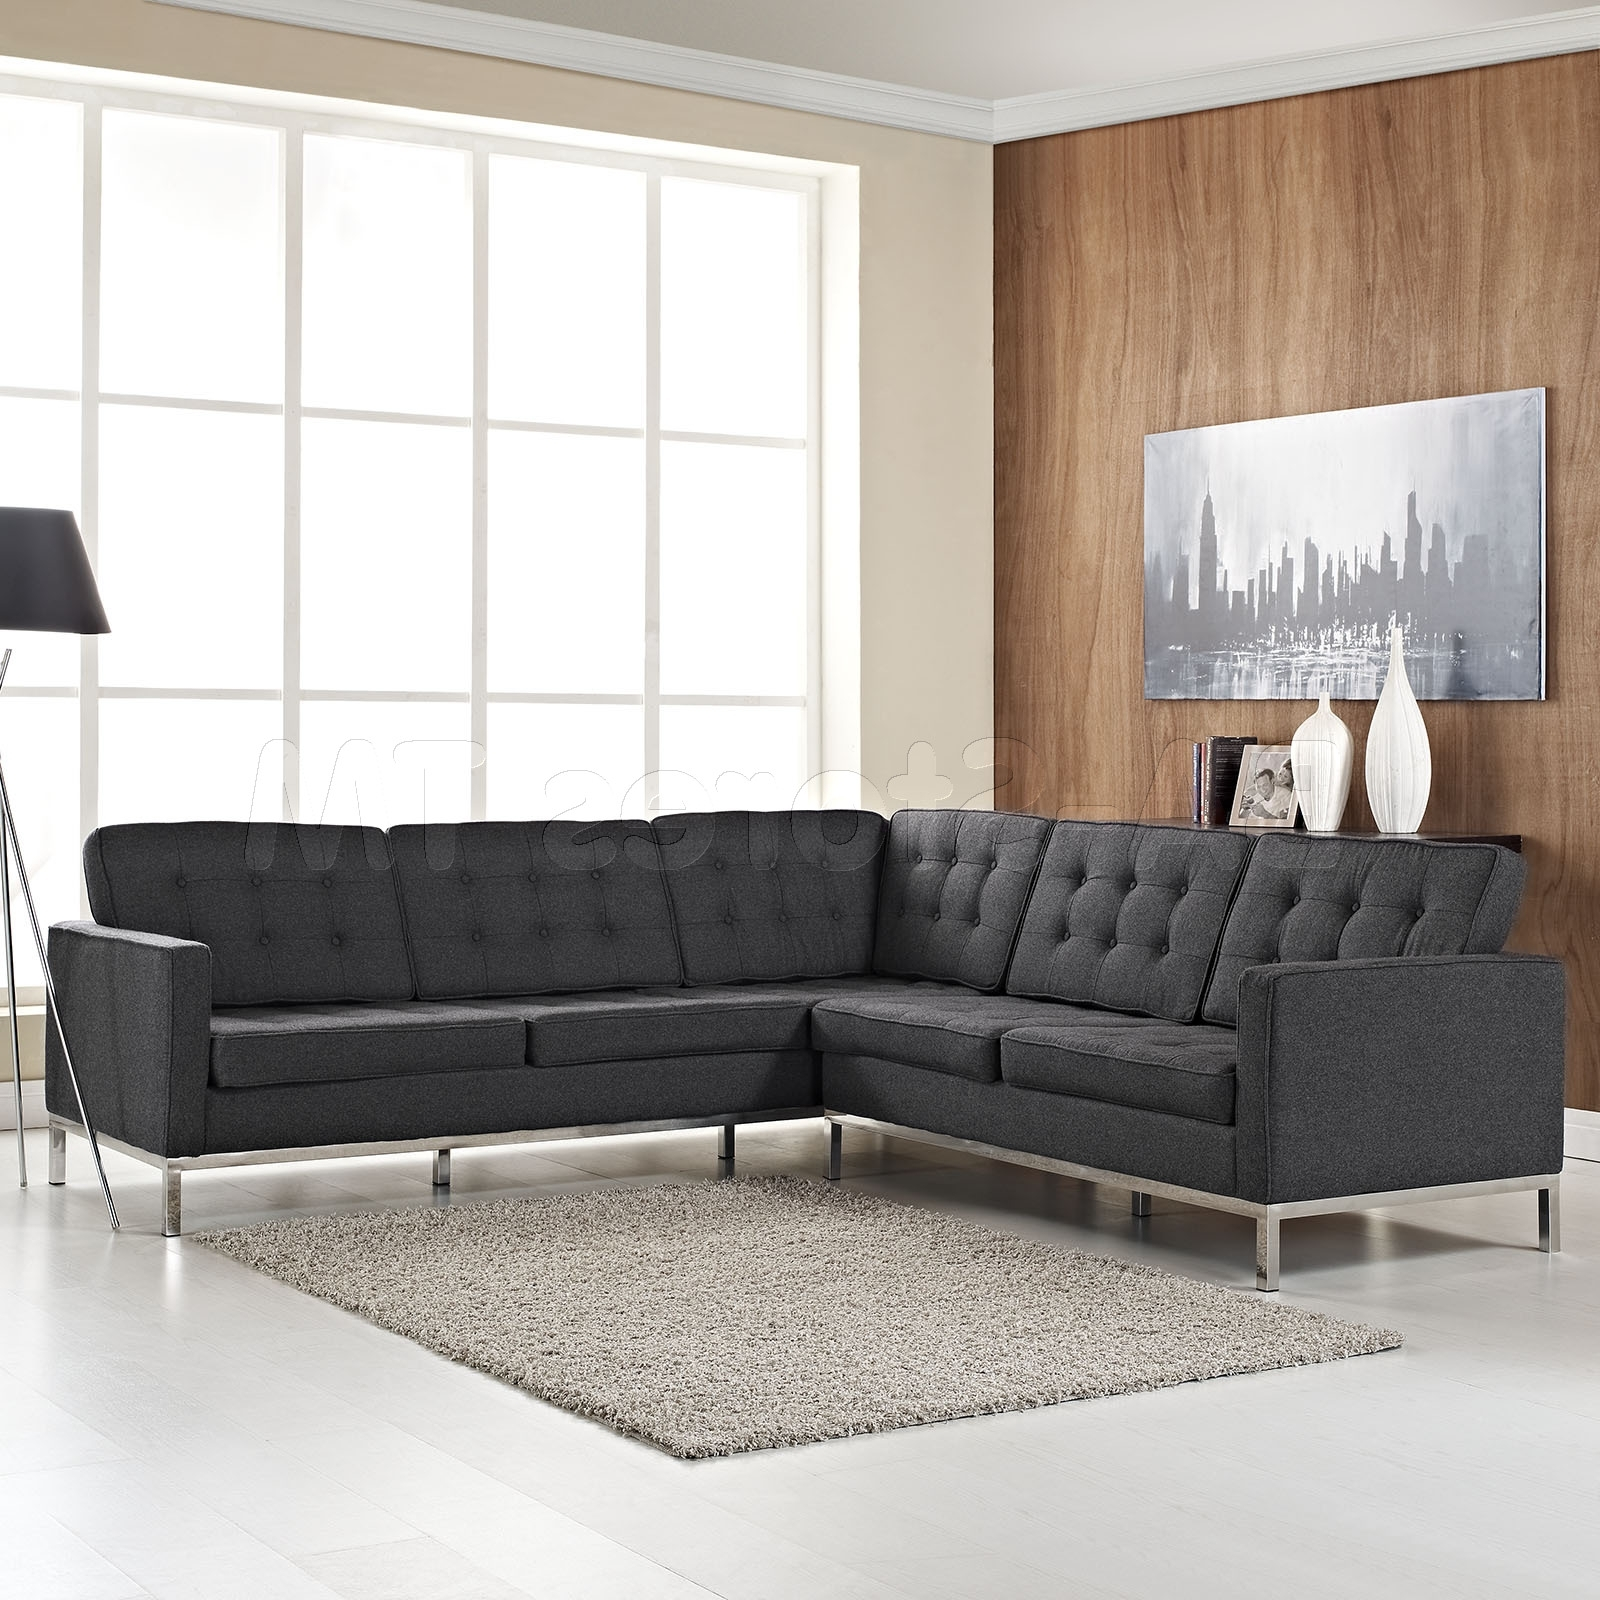 Well Known Couches Design New In Impressive Reversible Sectional Sofa Chaise Regarding Affordable Tufted Sofas (View 4 of 15)